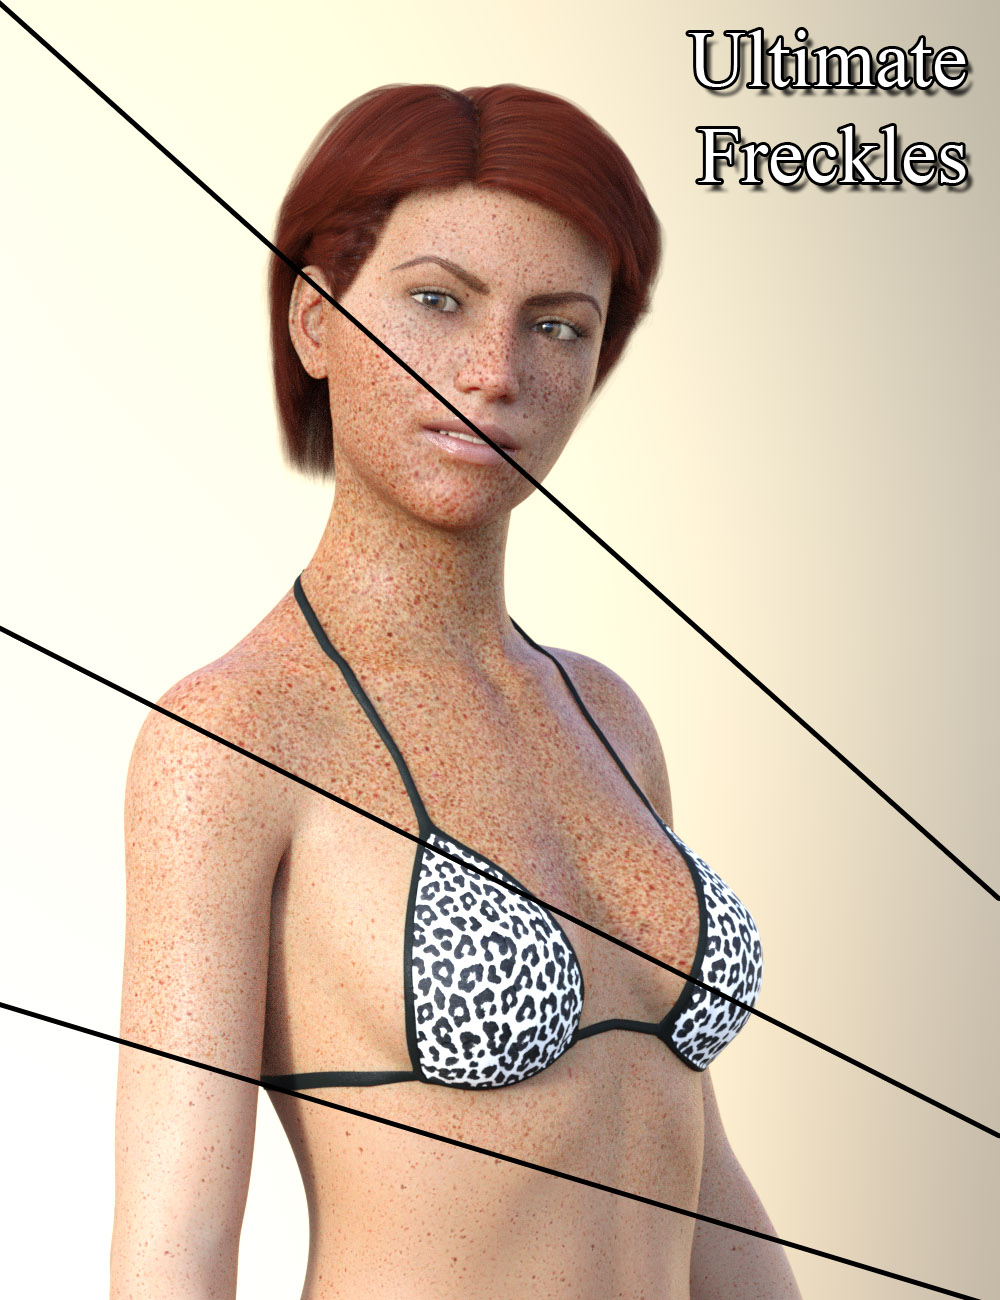 Ultimate Freckles for Genesis 8 and 3 Females and Males by: PhilW, 3D Models by Daz 3D